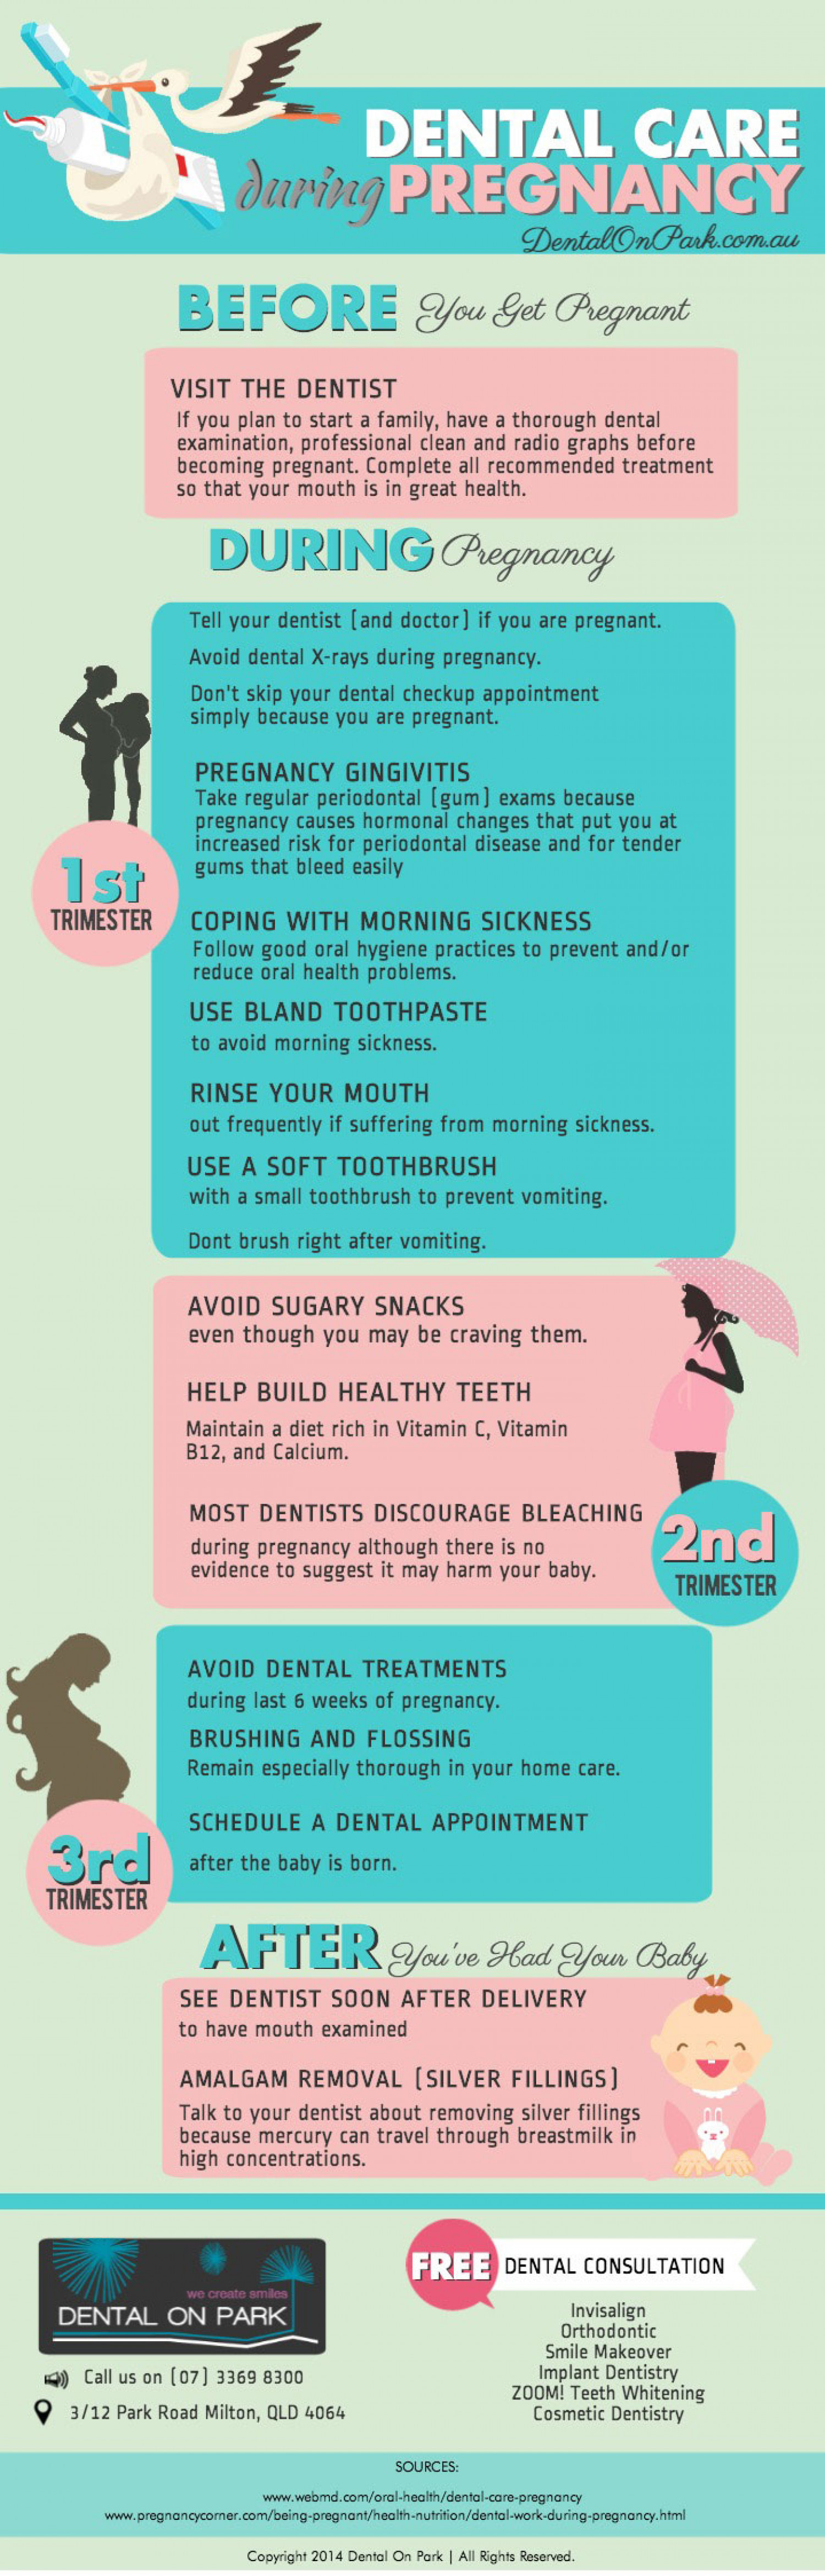 Dental Care During Pregnancy Infographic